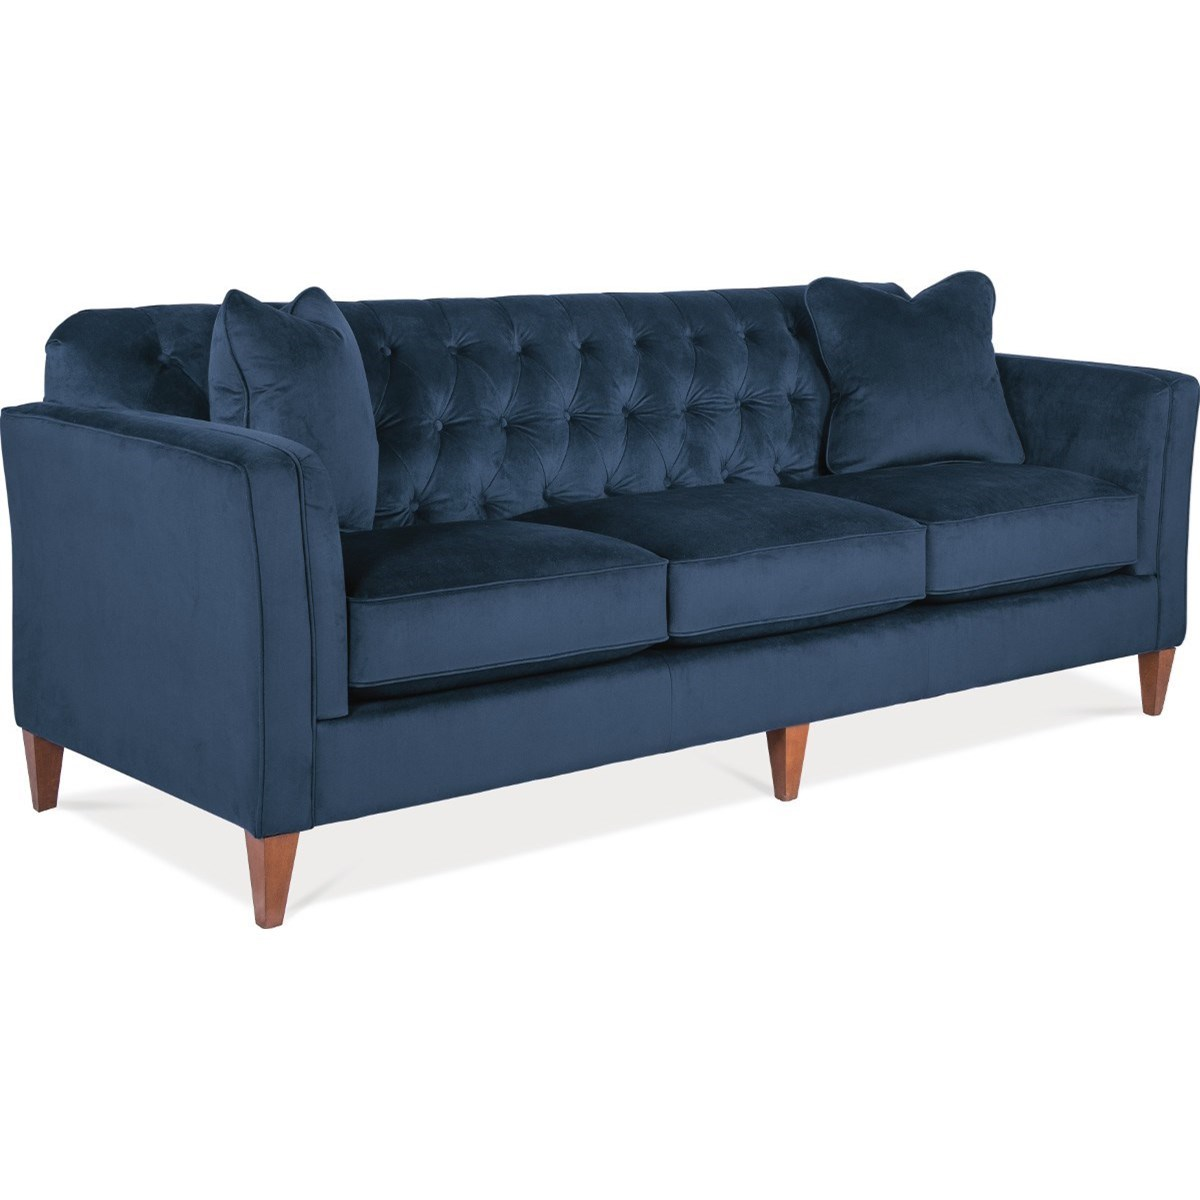 Alexandria Premier Sofa by La-Z-Boy at Home Furnishings Direct